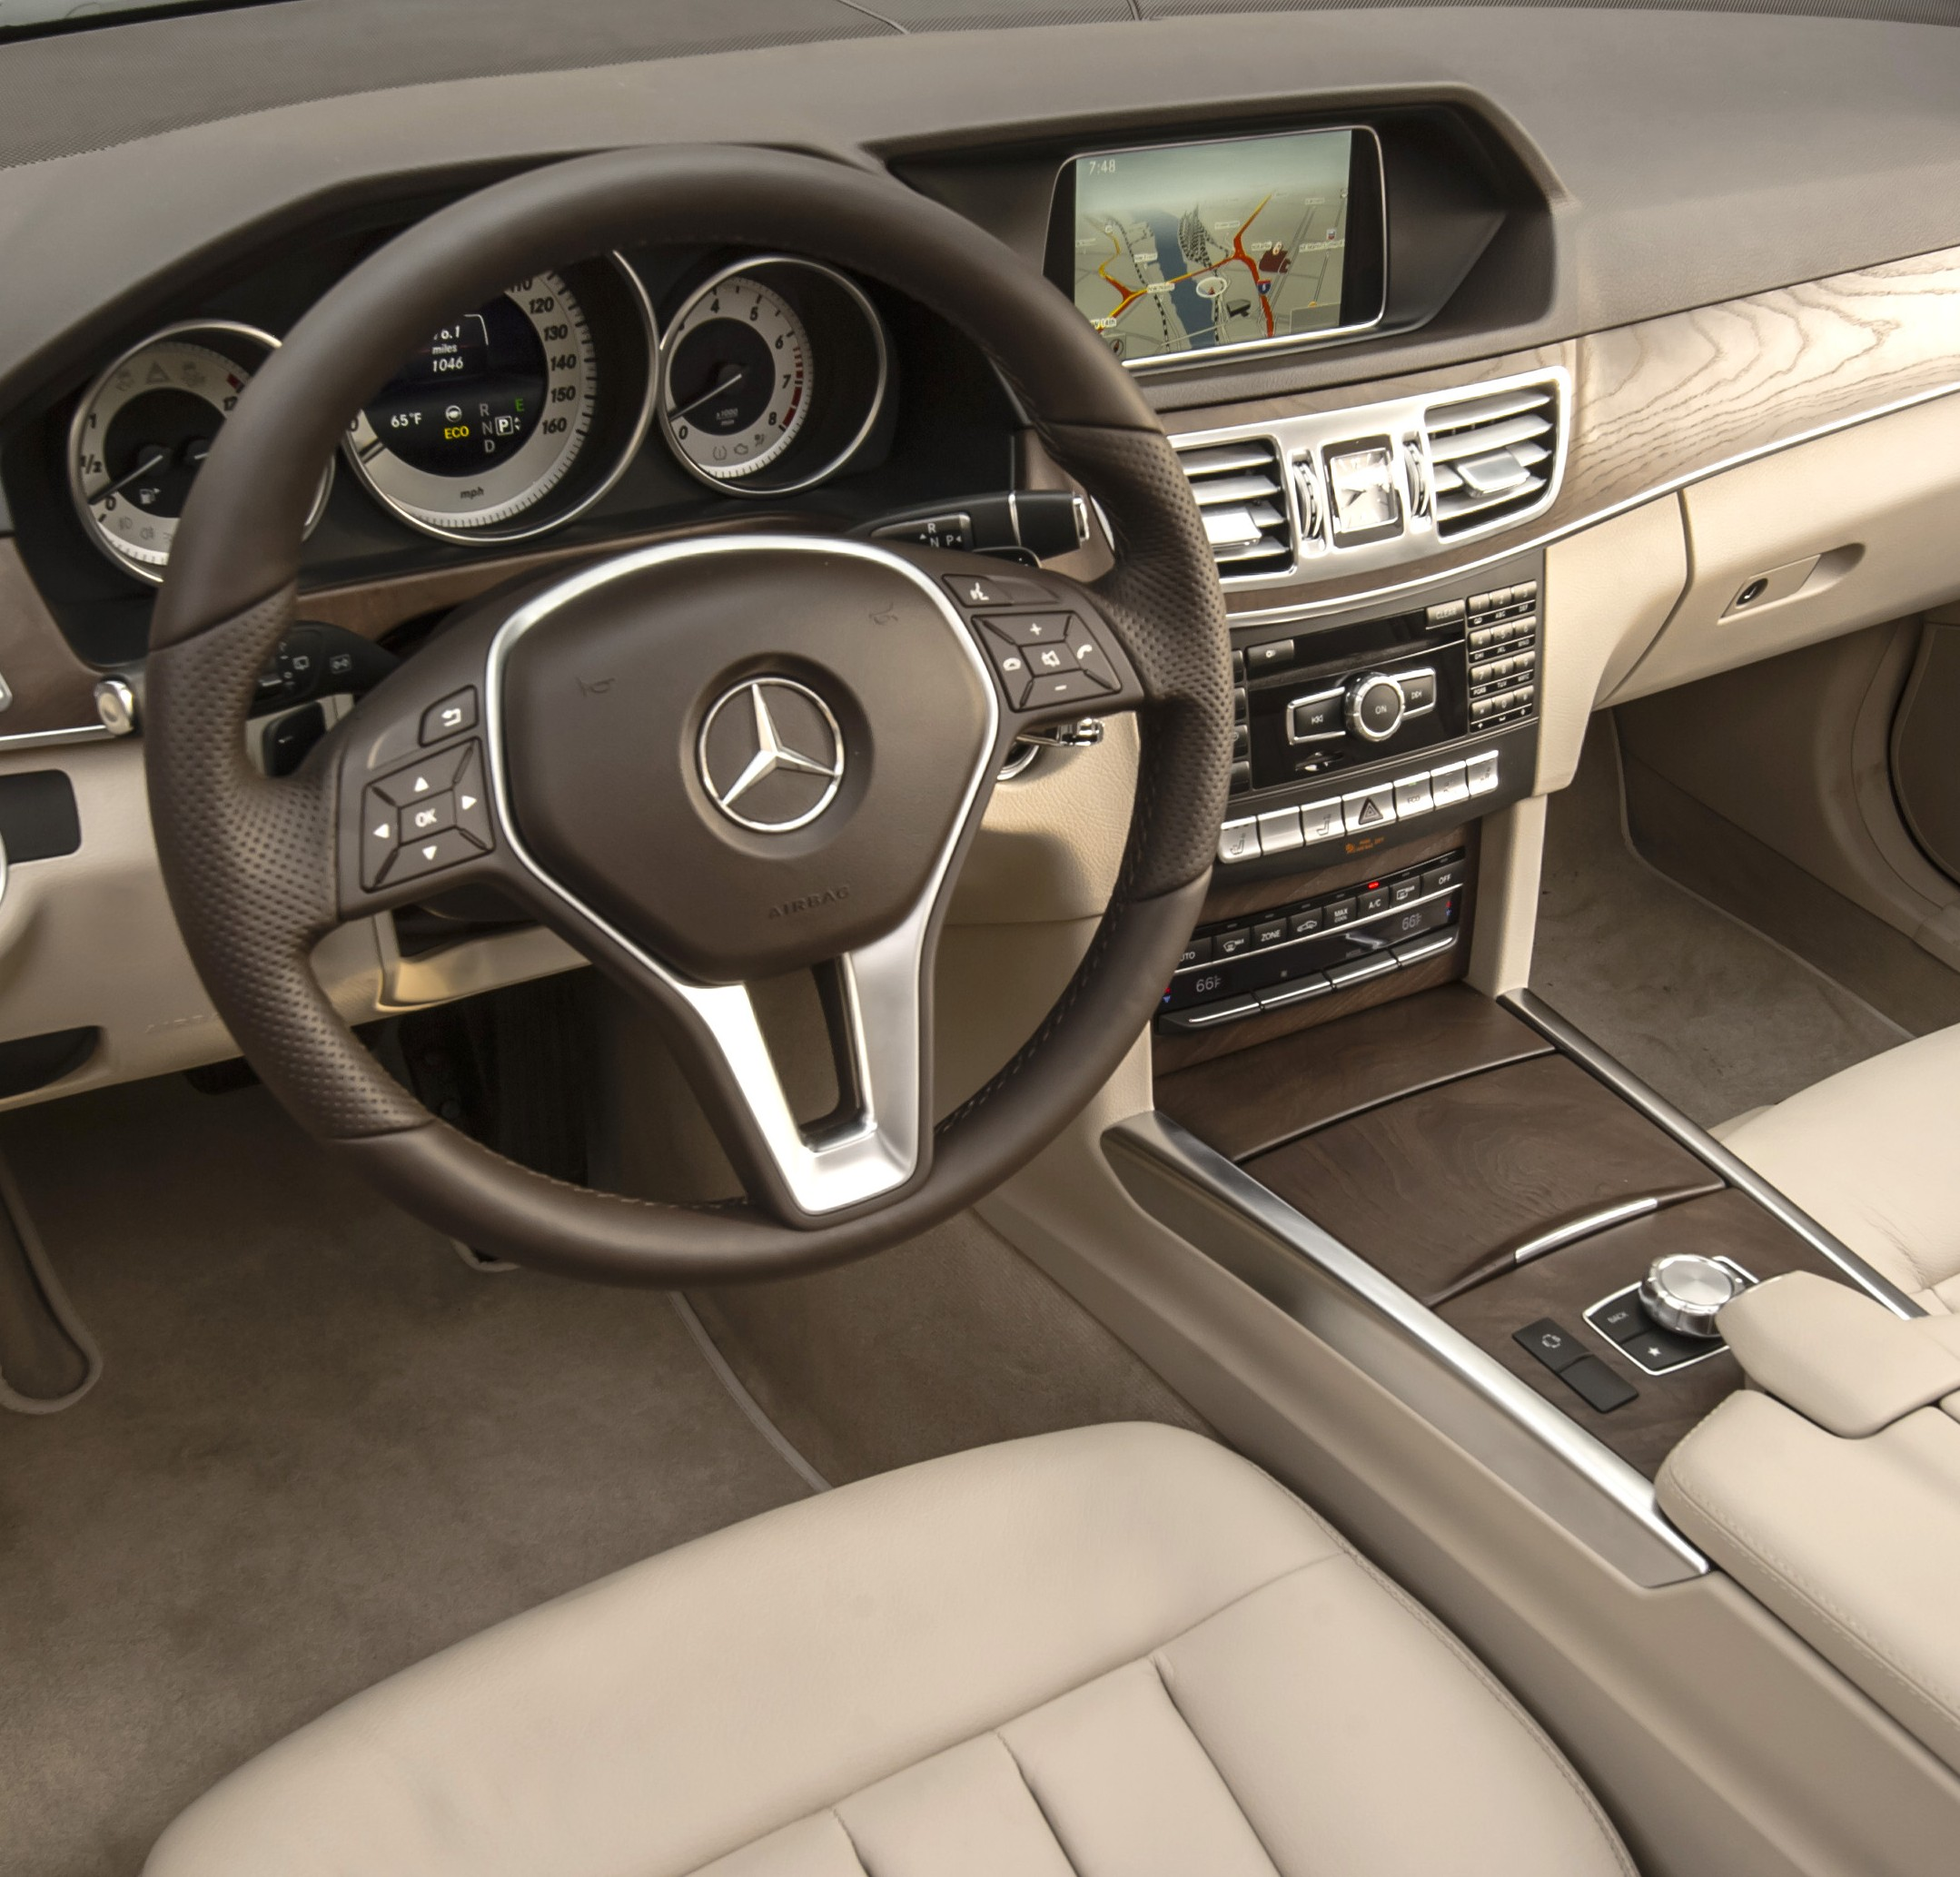 2014 Mercedes-Benz E350 4MATIC Wagon Interior